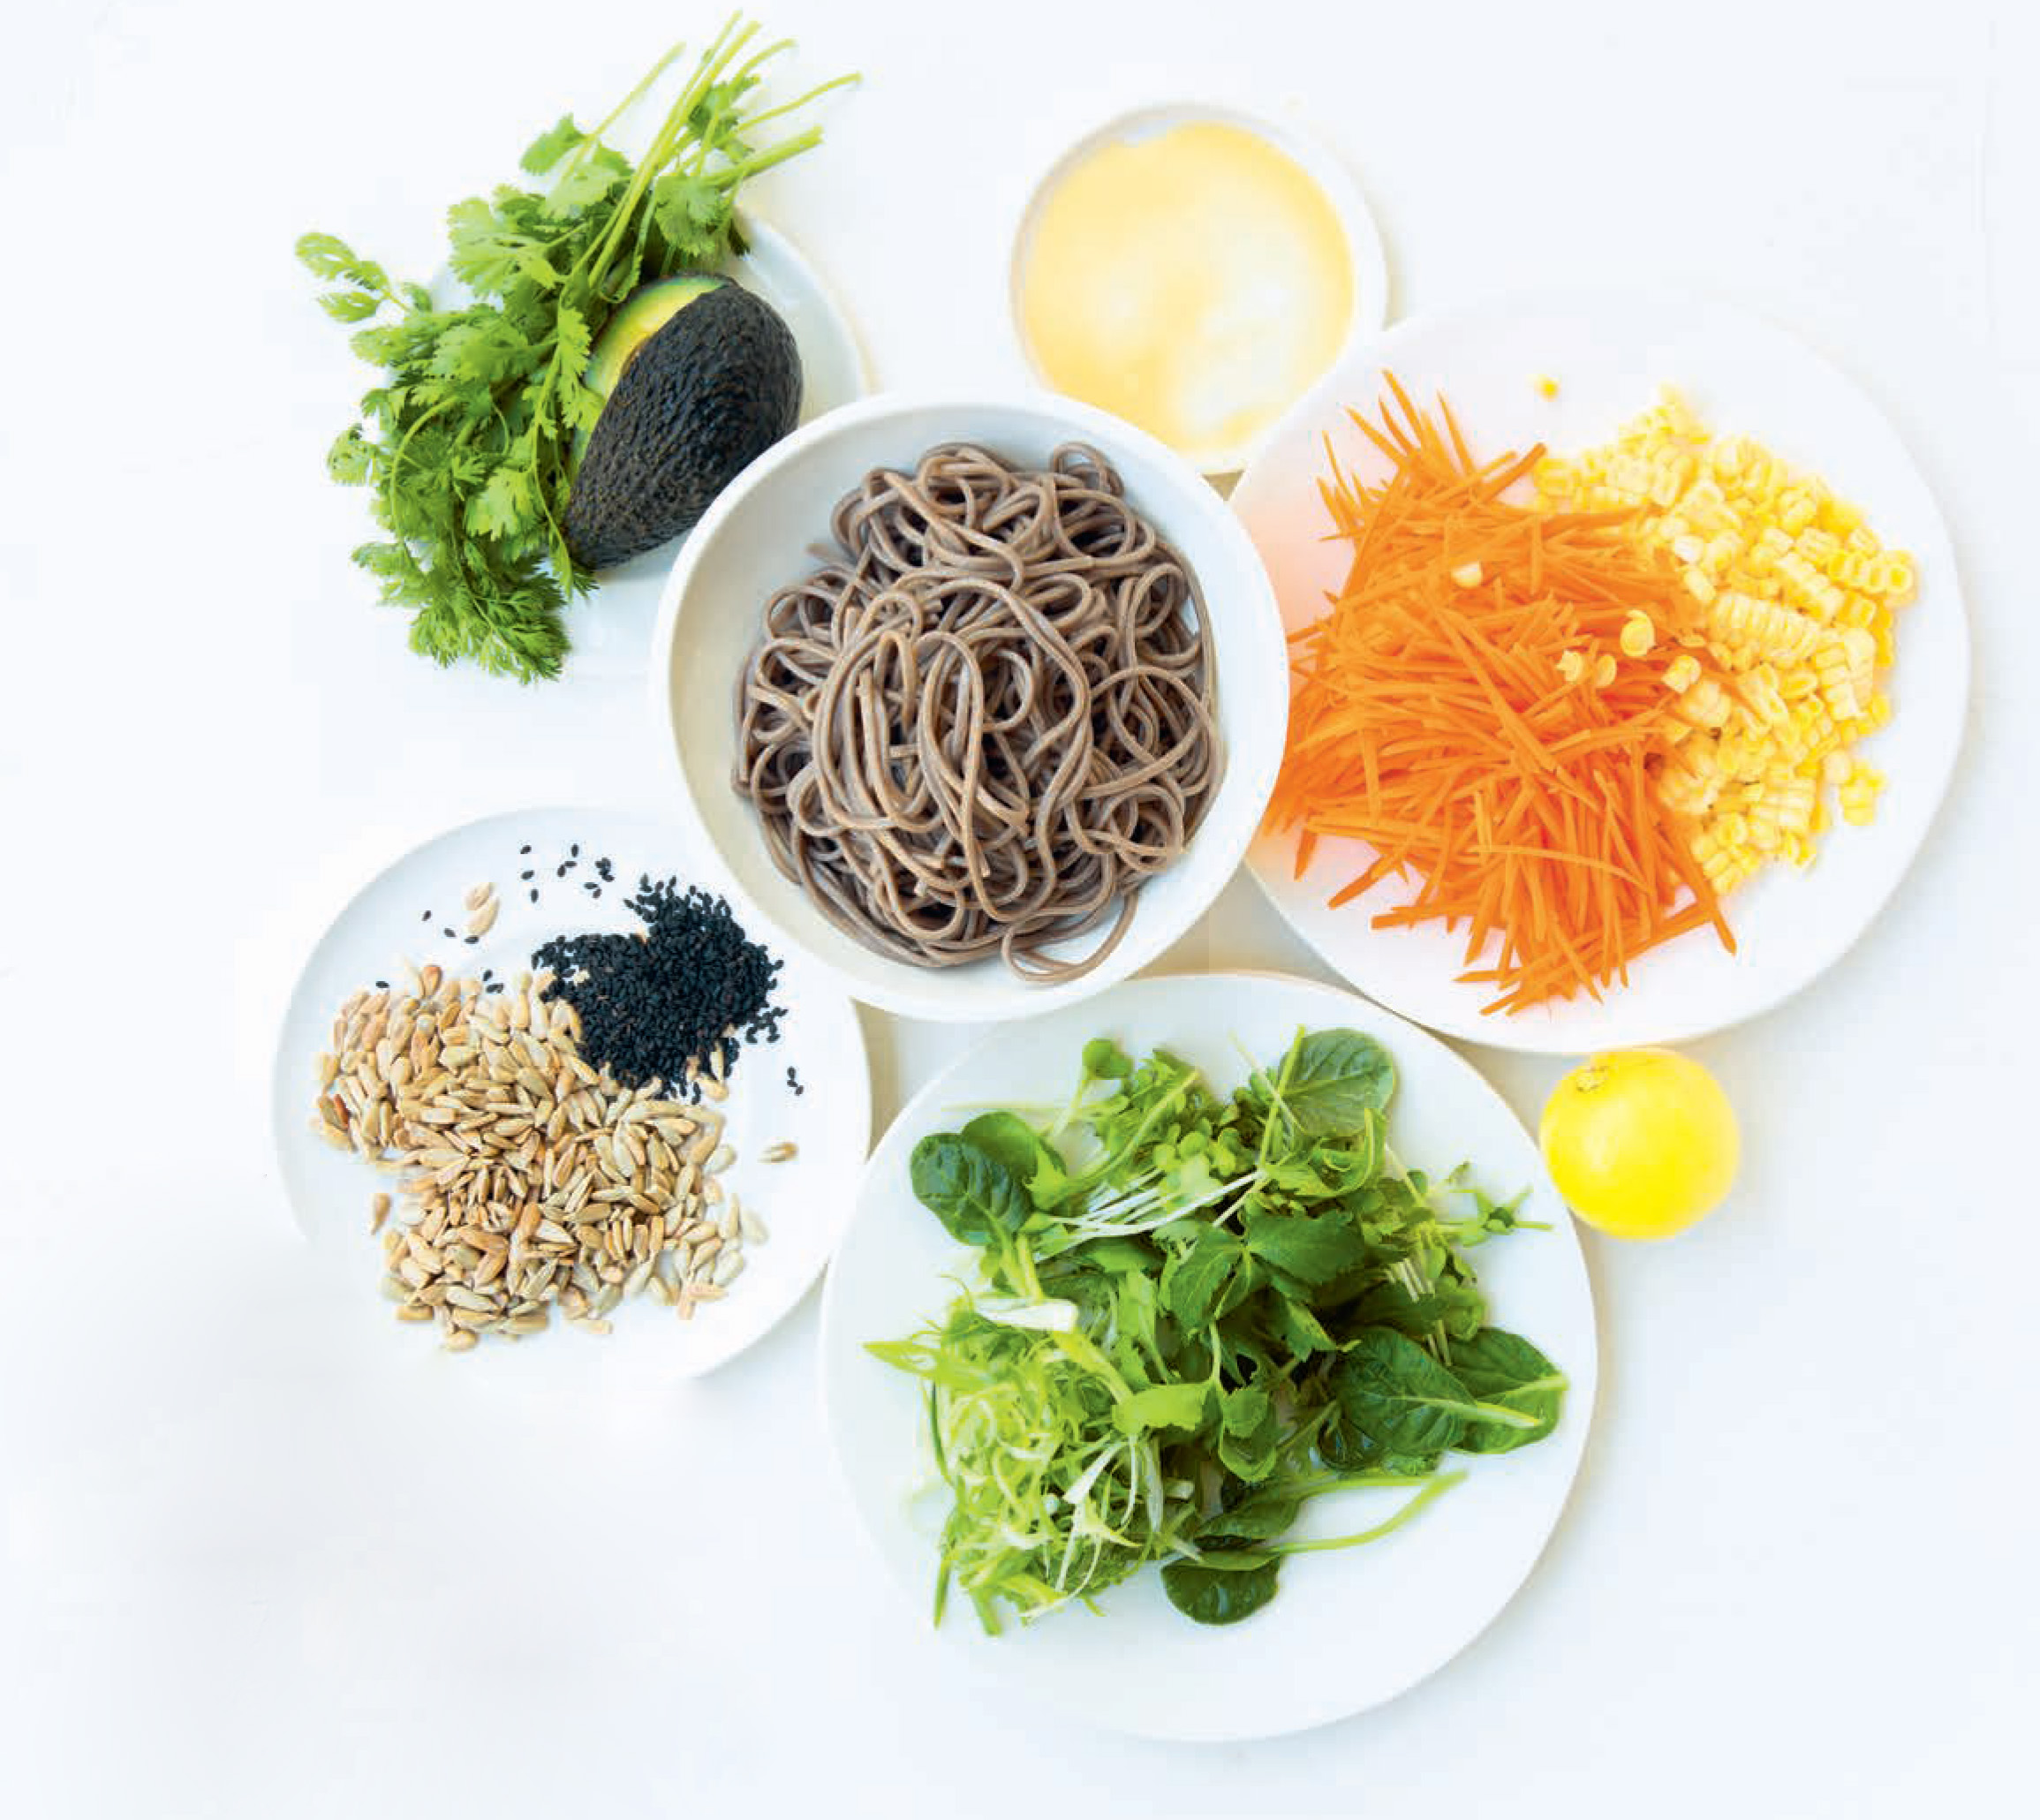 Soba noodles with miso dressing